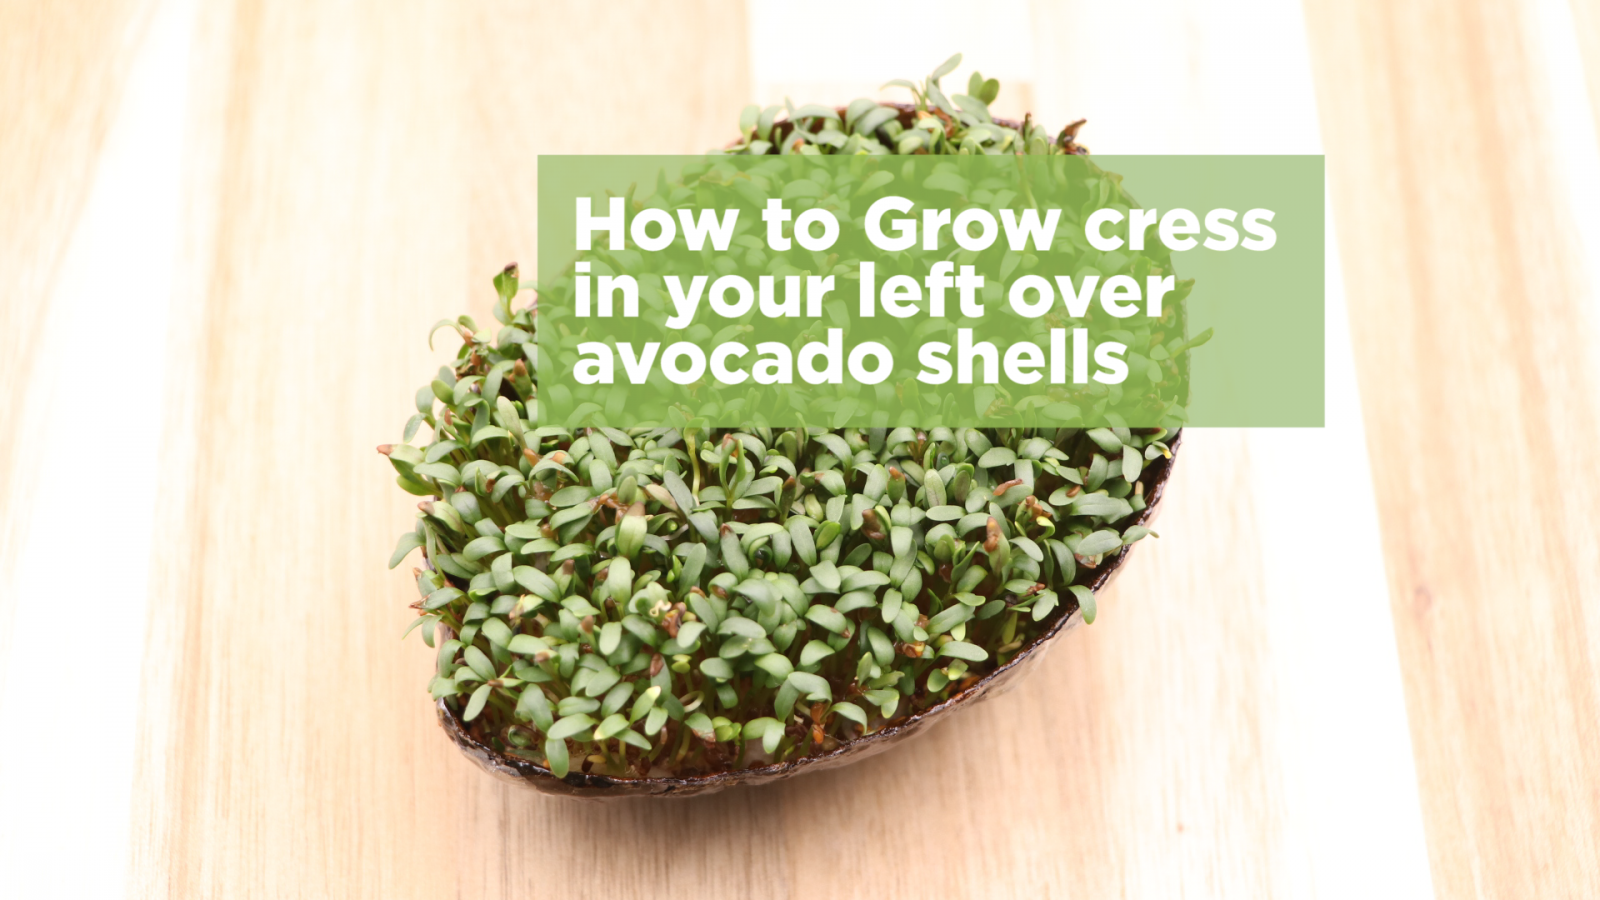 How to grow cress in your leftover avocado shells for Grow your own avocado tree from seed